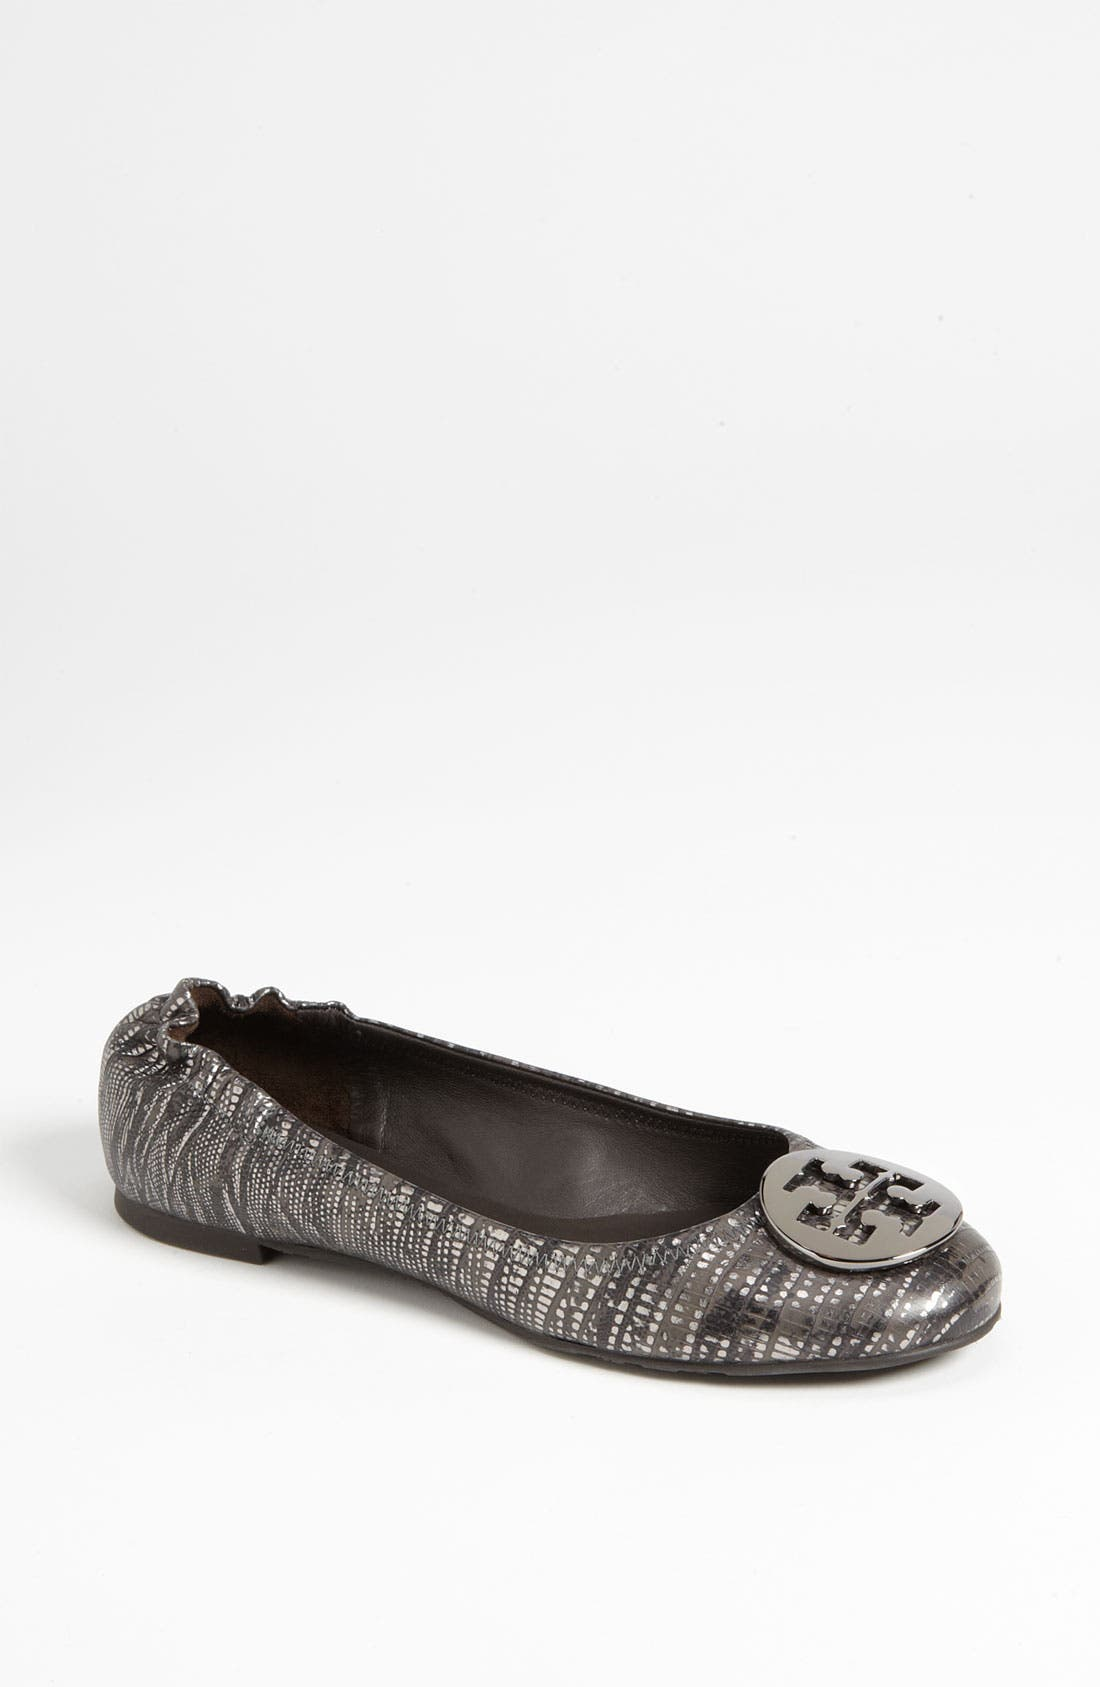 Alternate Image 1 Selected - Tory Burch Ballet Flat